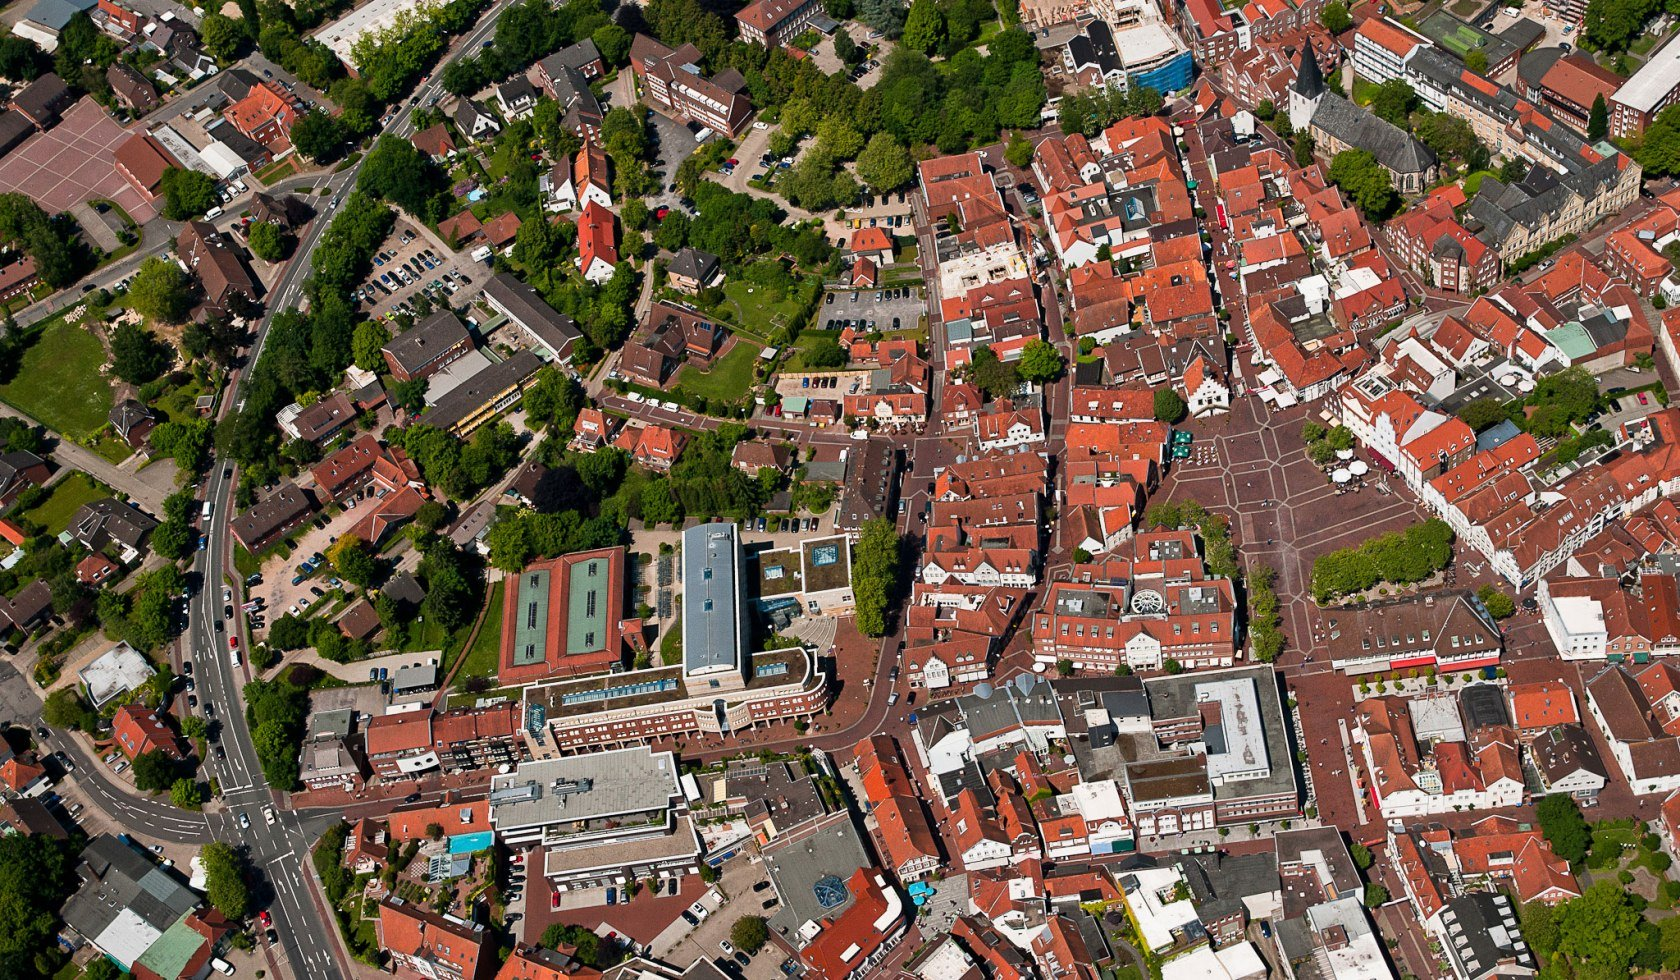 Lingen from above